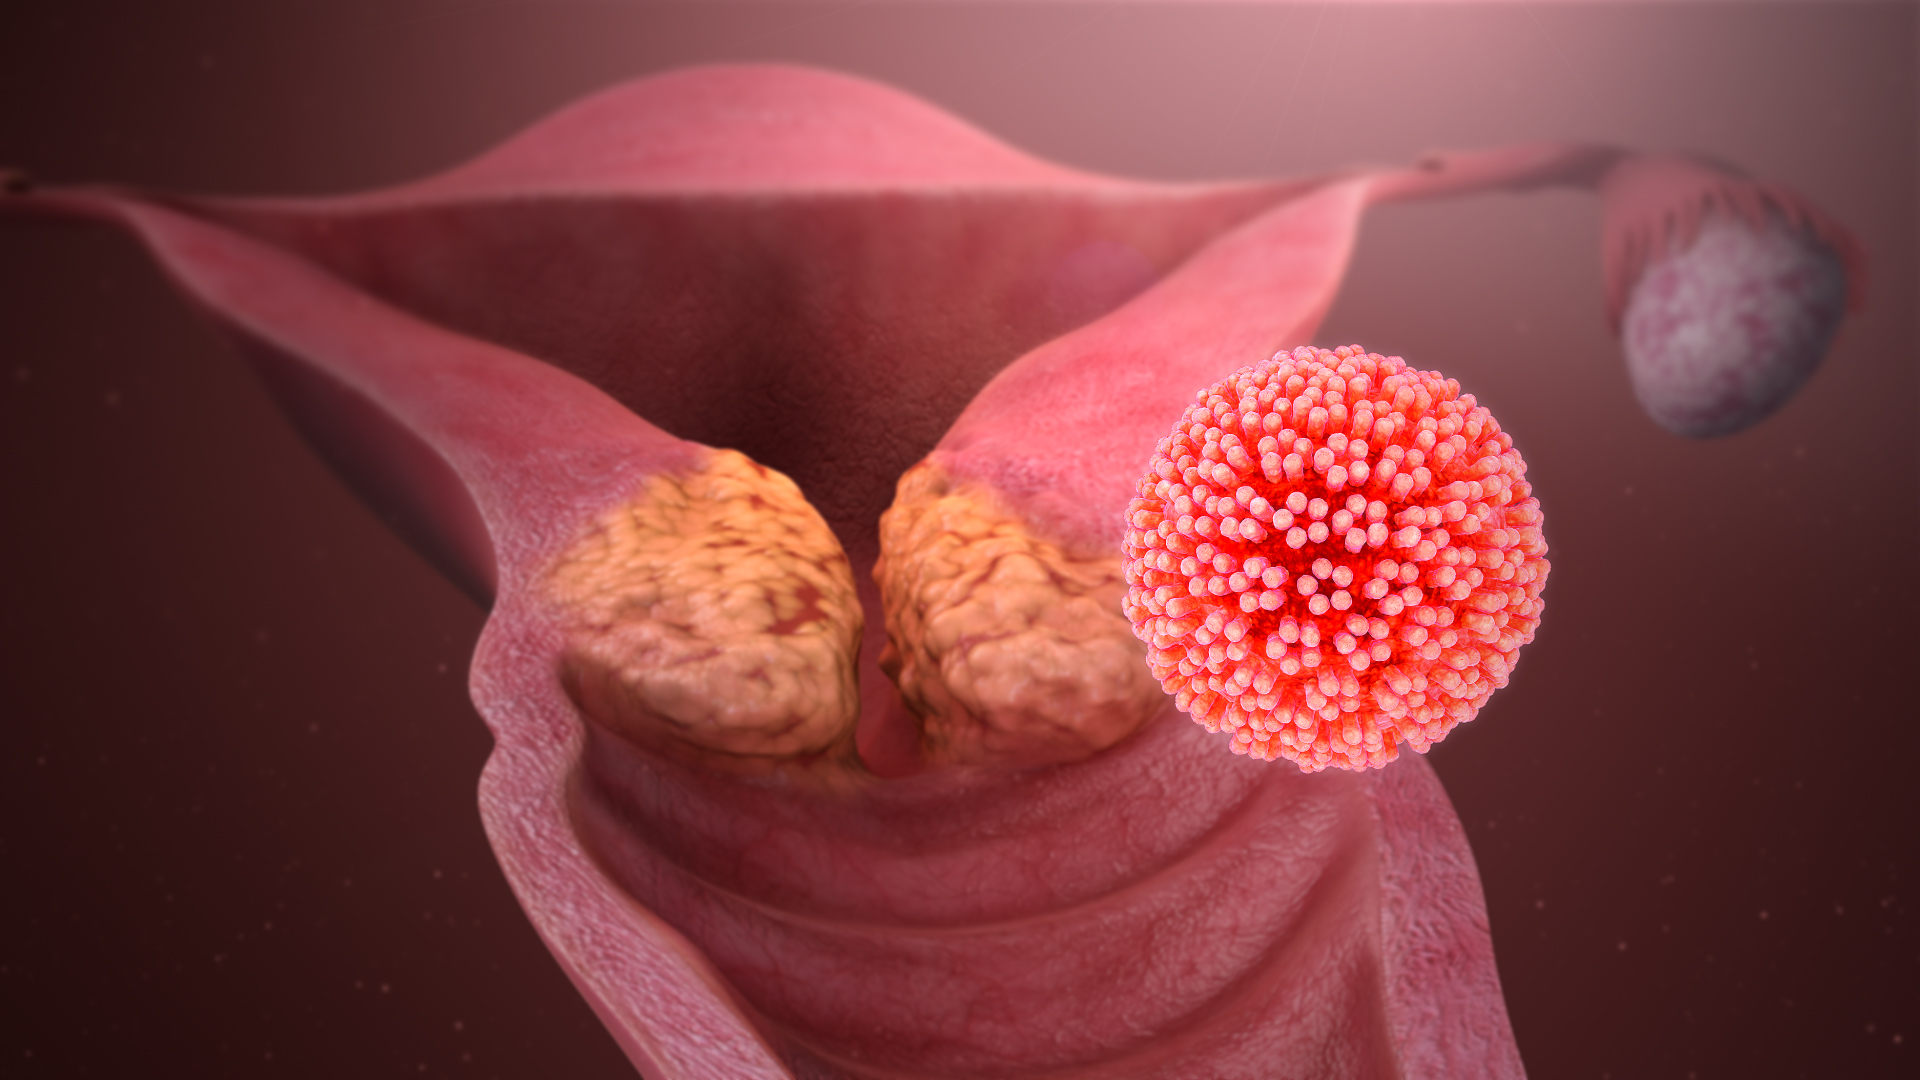 Is the hpv virus always transmitted sexually